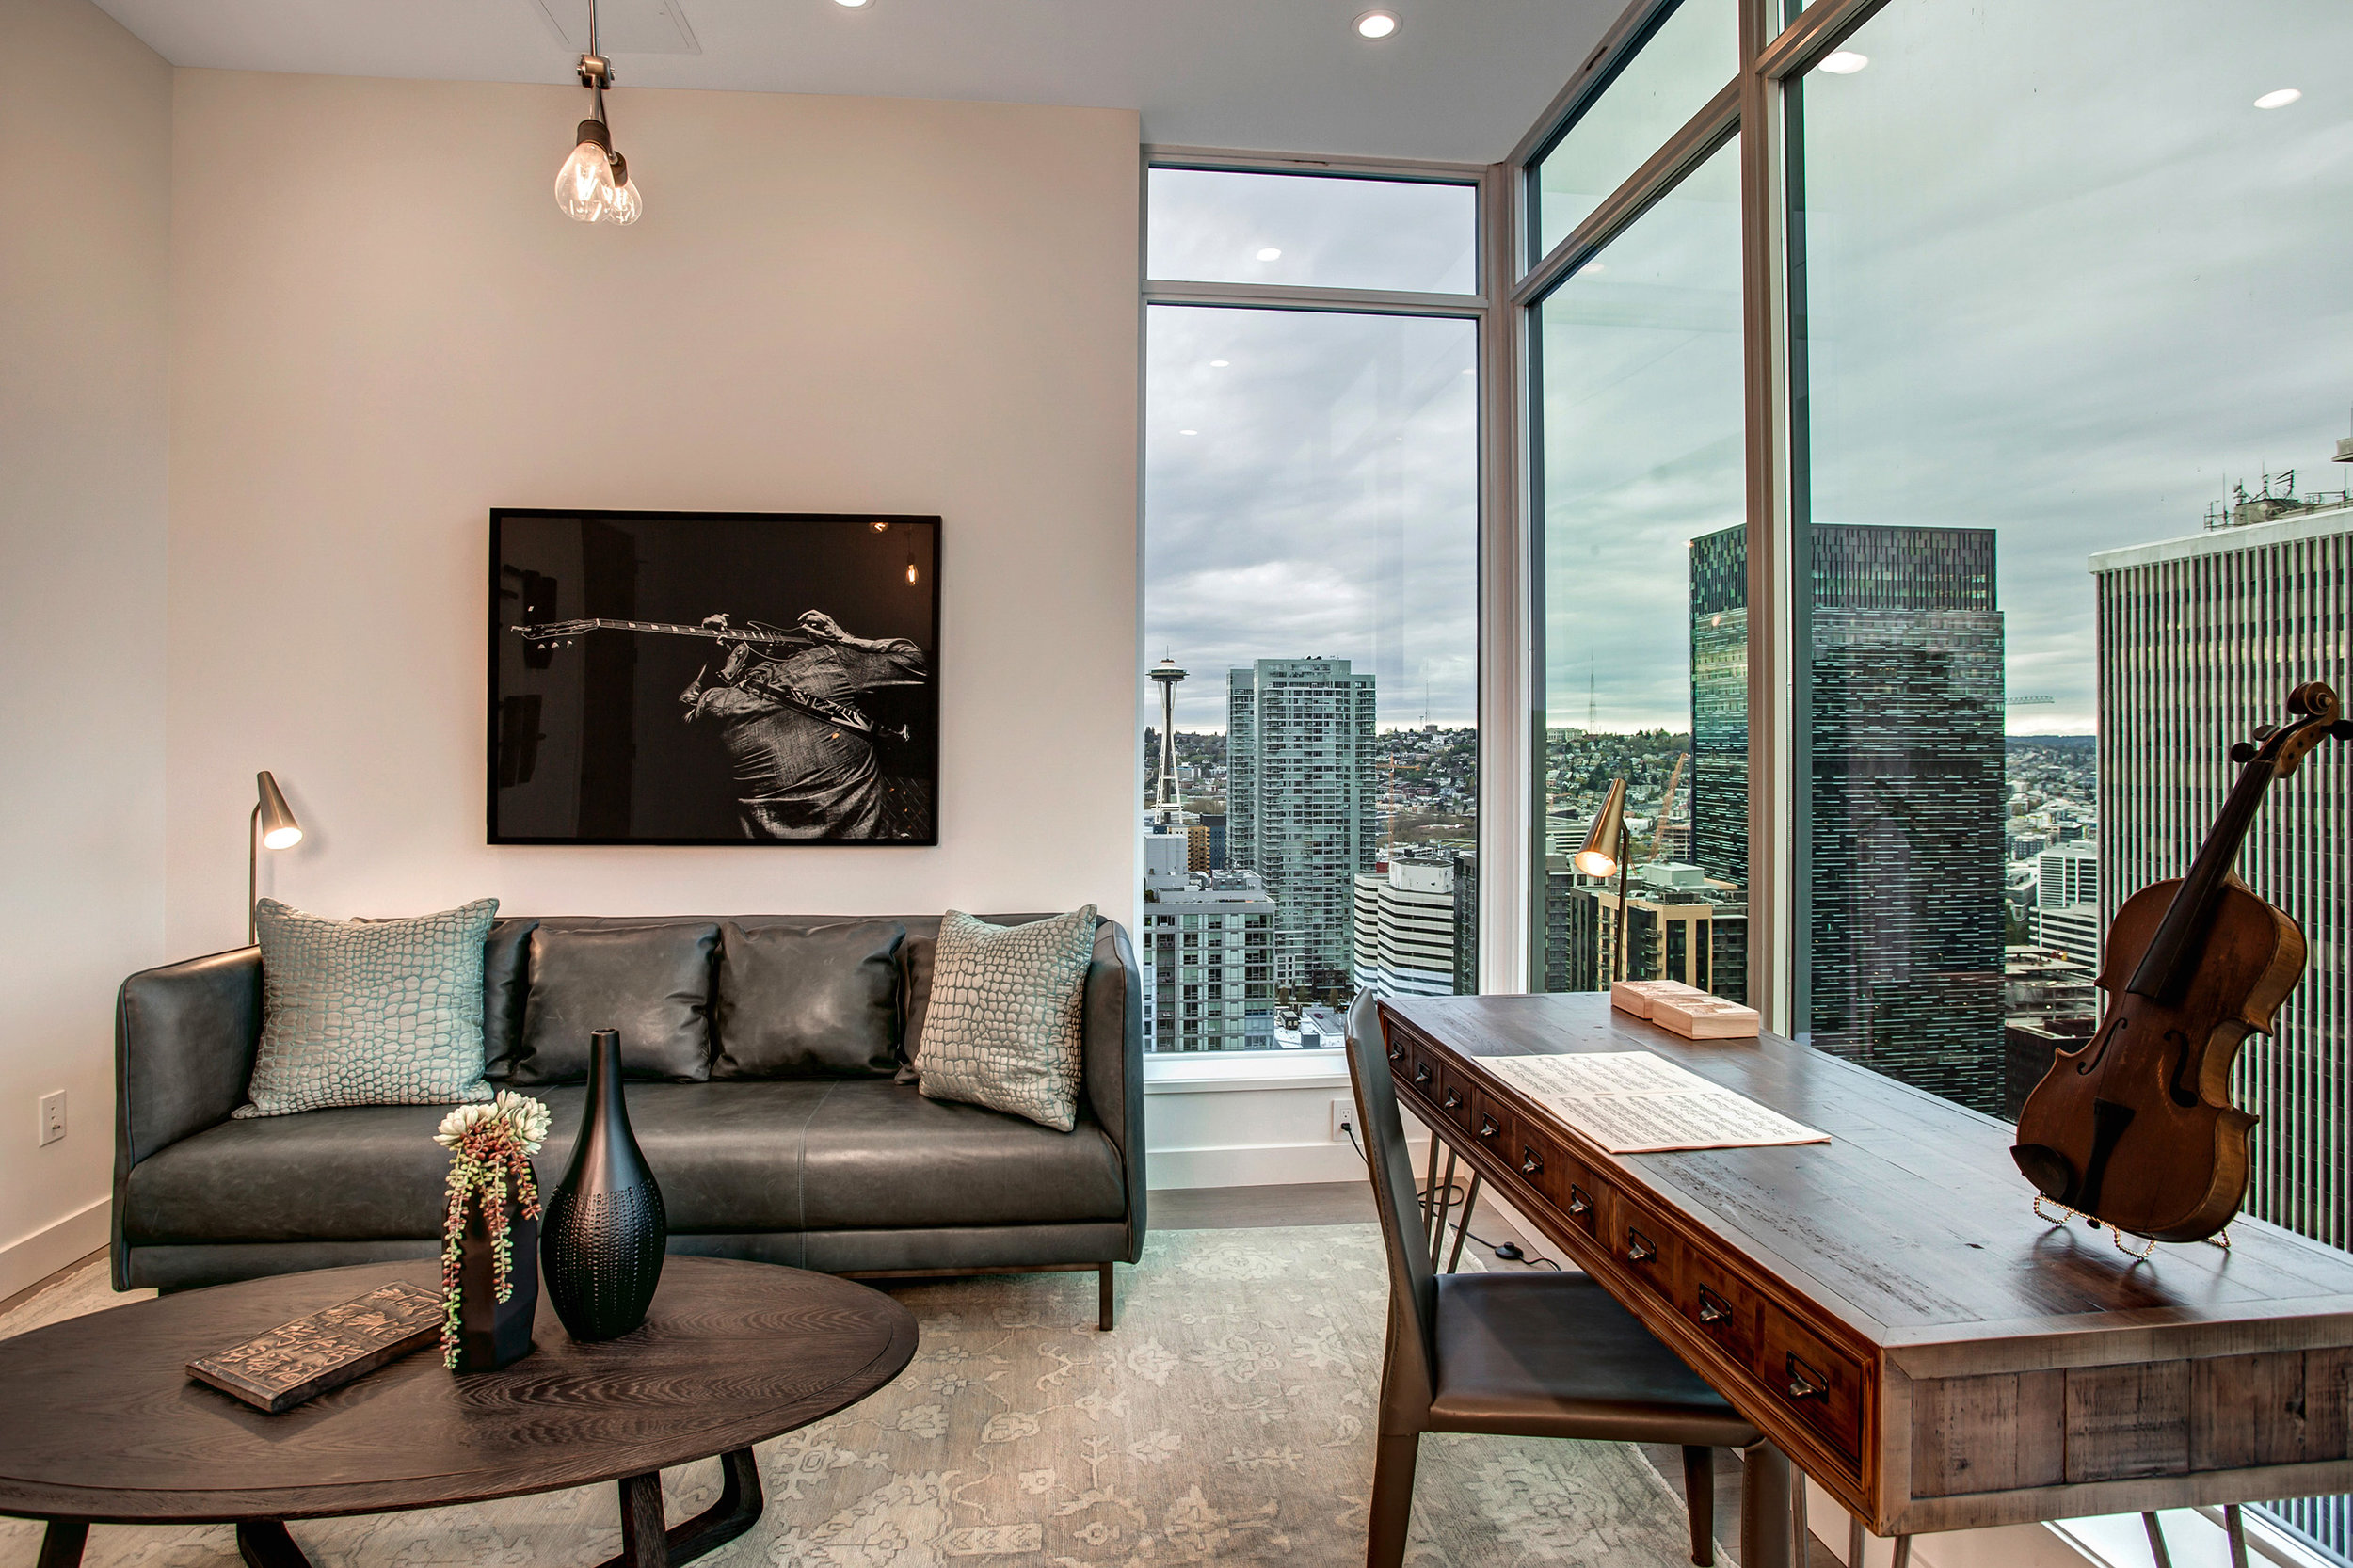 Commanding east facing views from the versatile flex room. Use as an office, bonus/media space, or a quiet reading room.